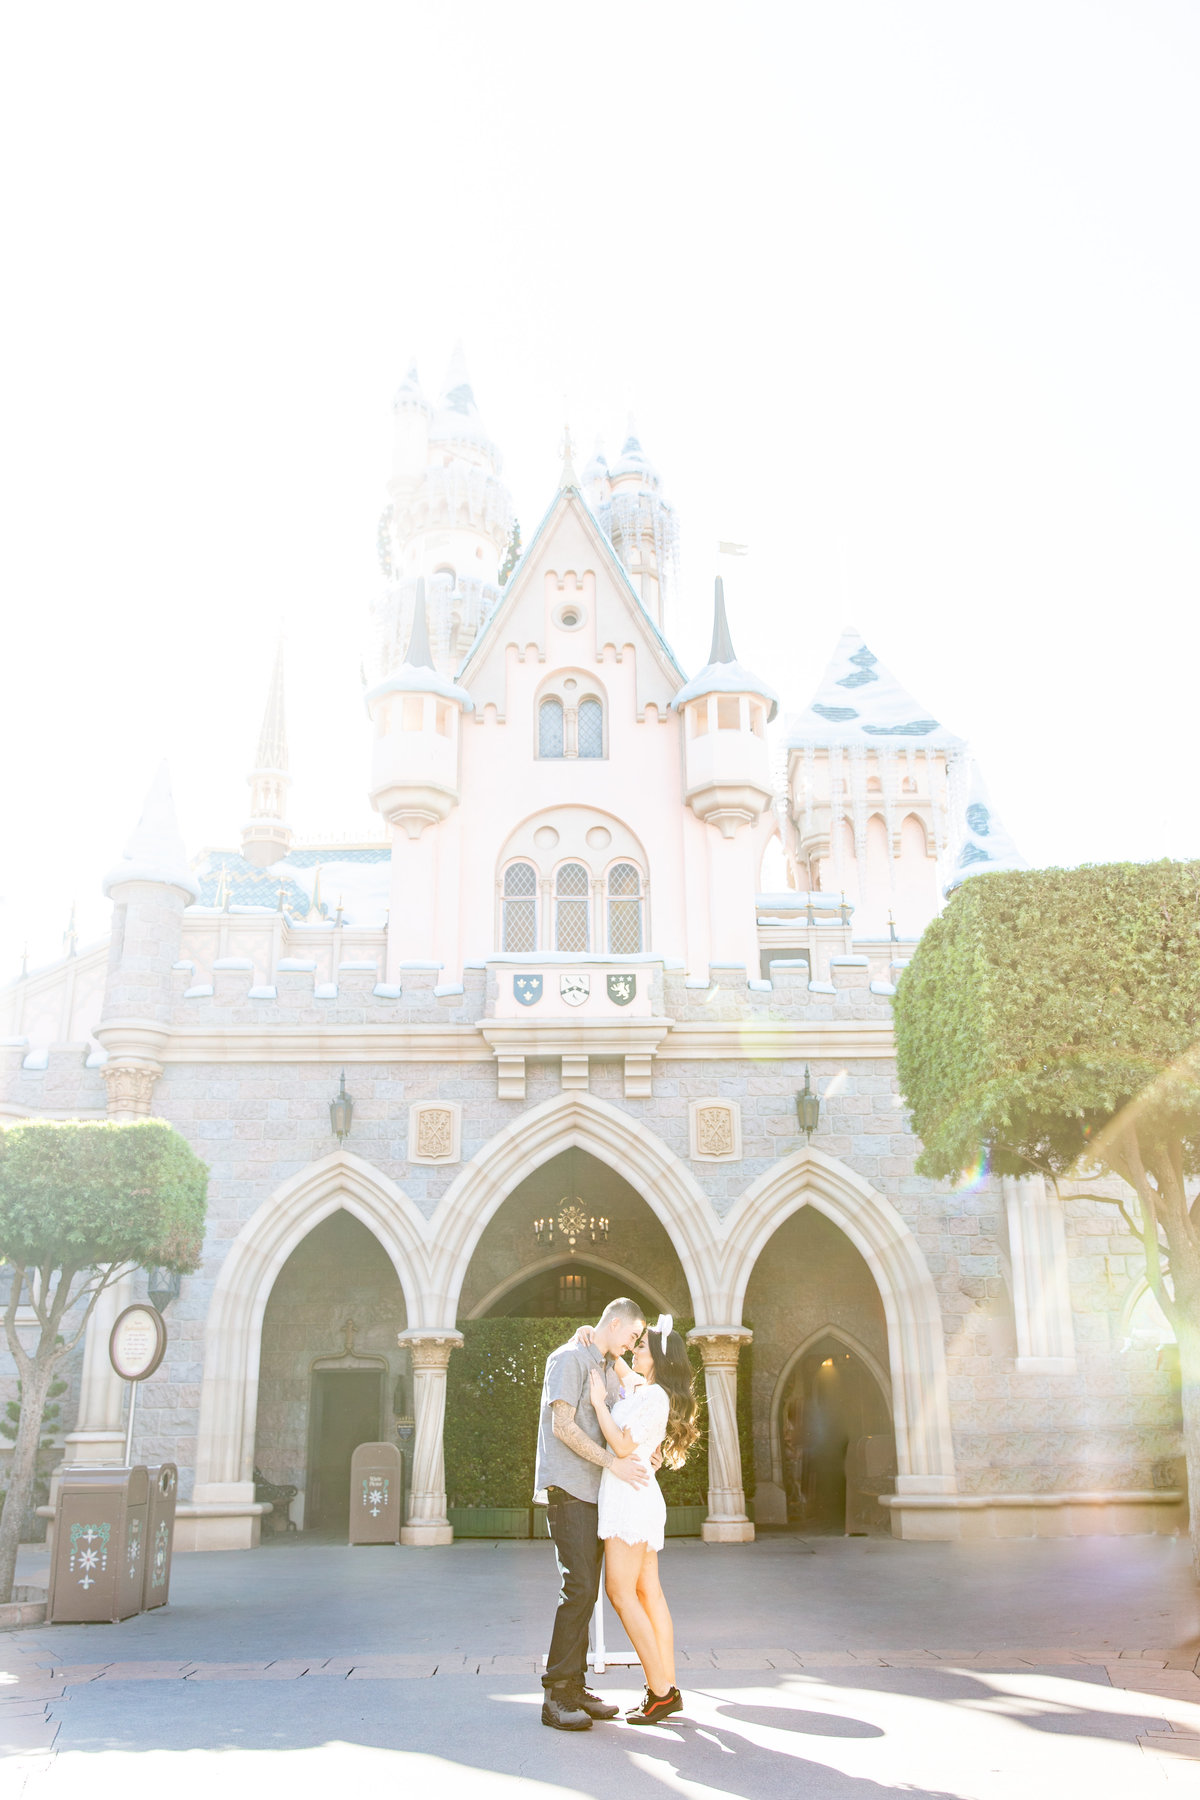 DisneyEngagement-5